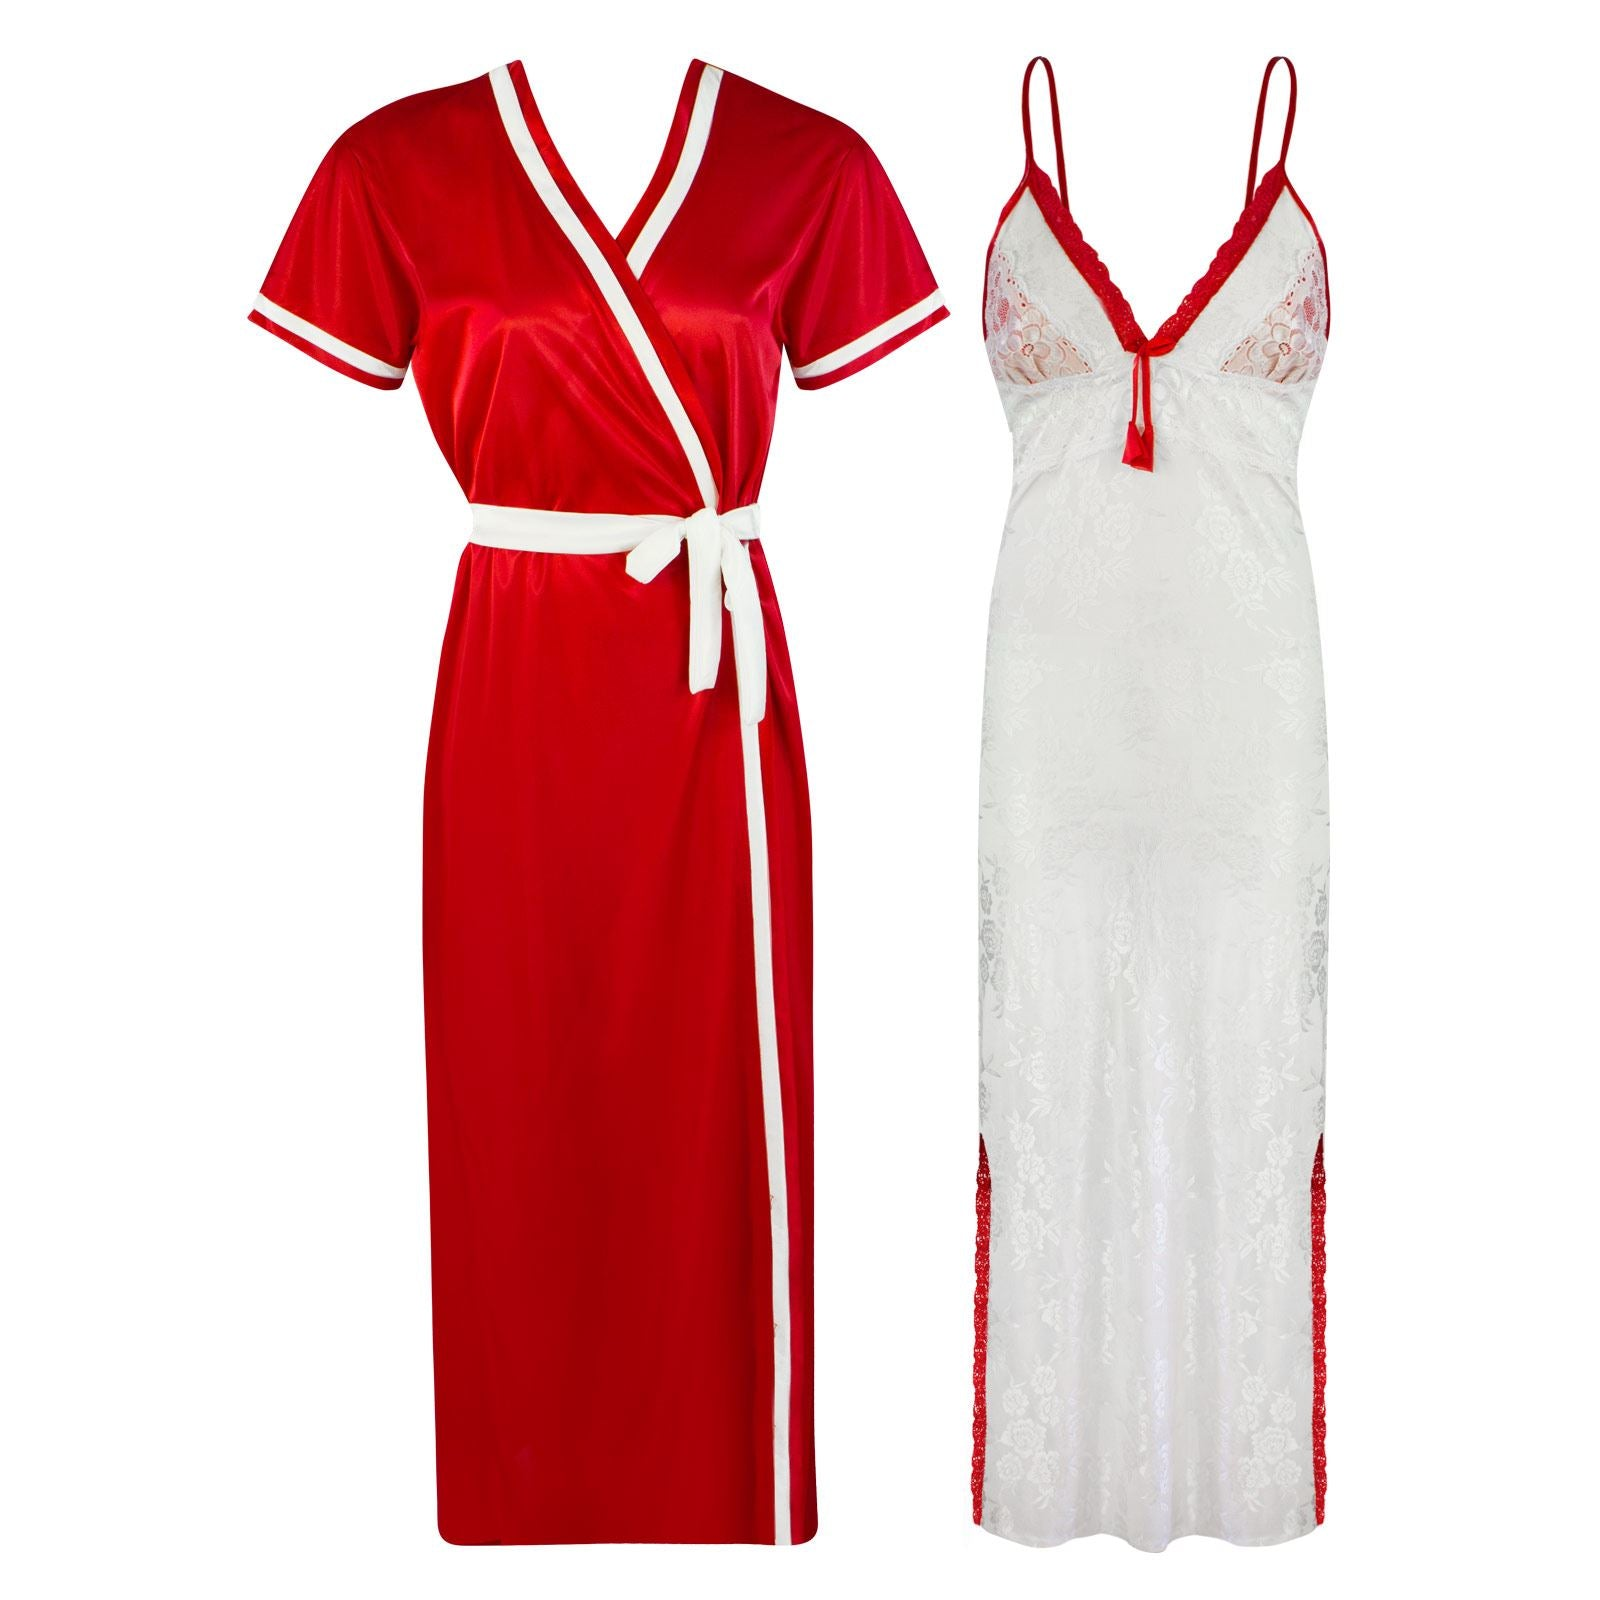 Sexy Lace Satin White Nightdress With Robe [colour]- Hautie UK, #Nightfashion | #Underfashion ONE, FREE SIZE S M L XL  DEEP RED